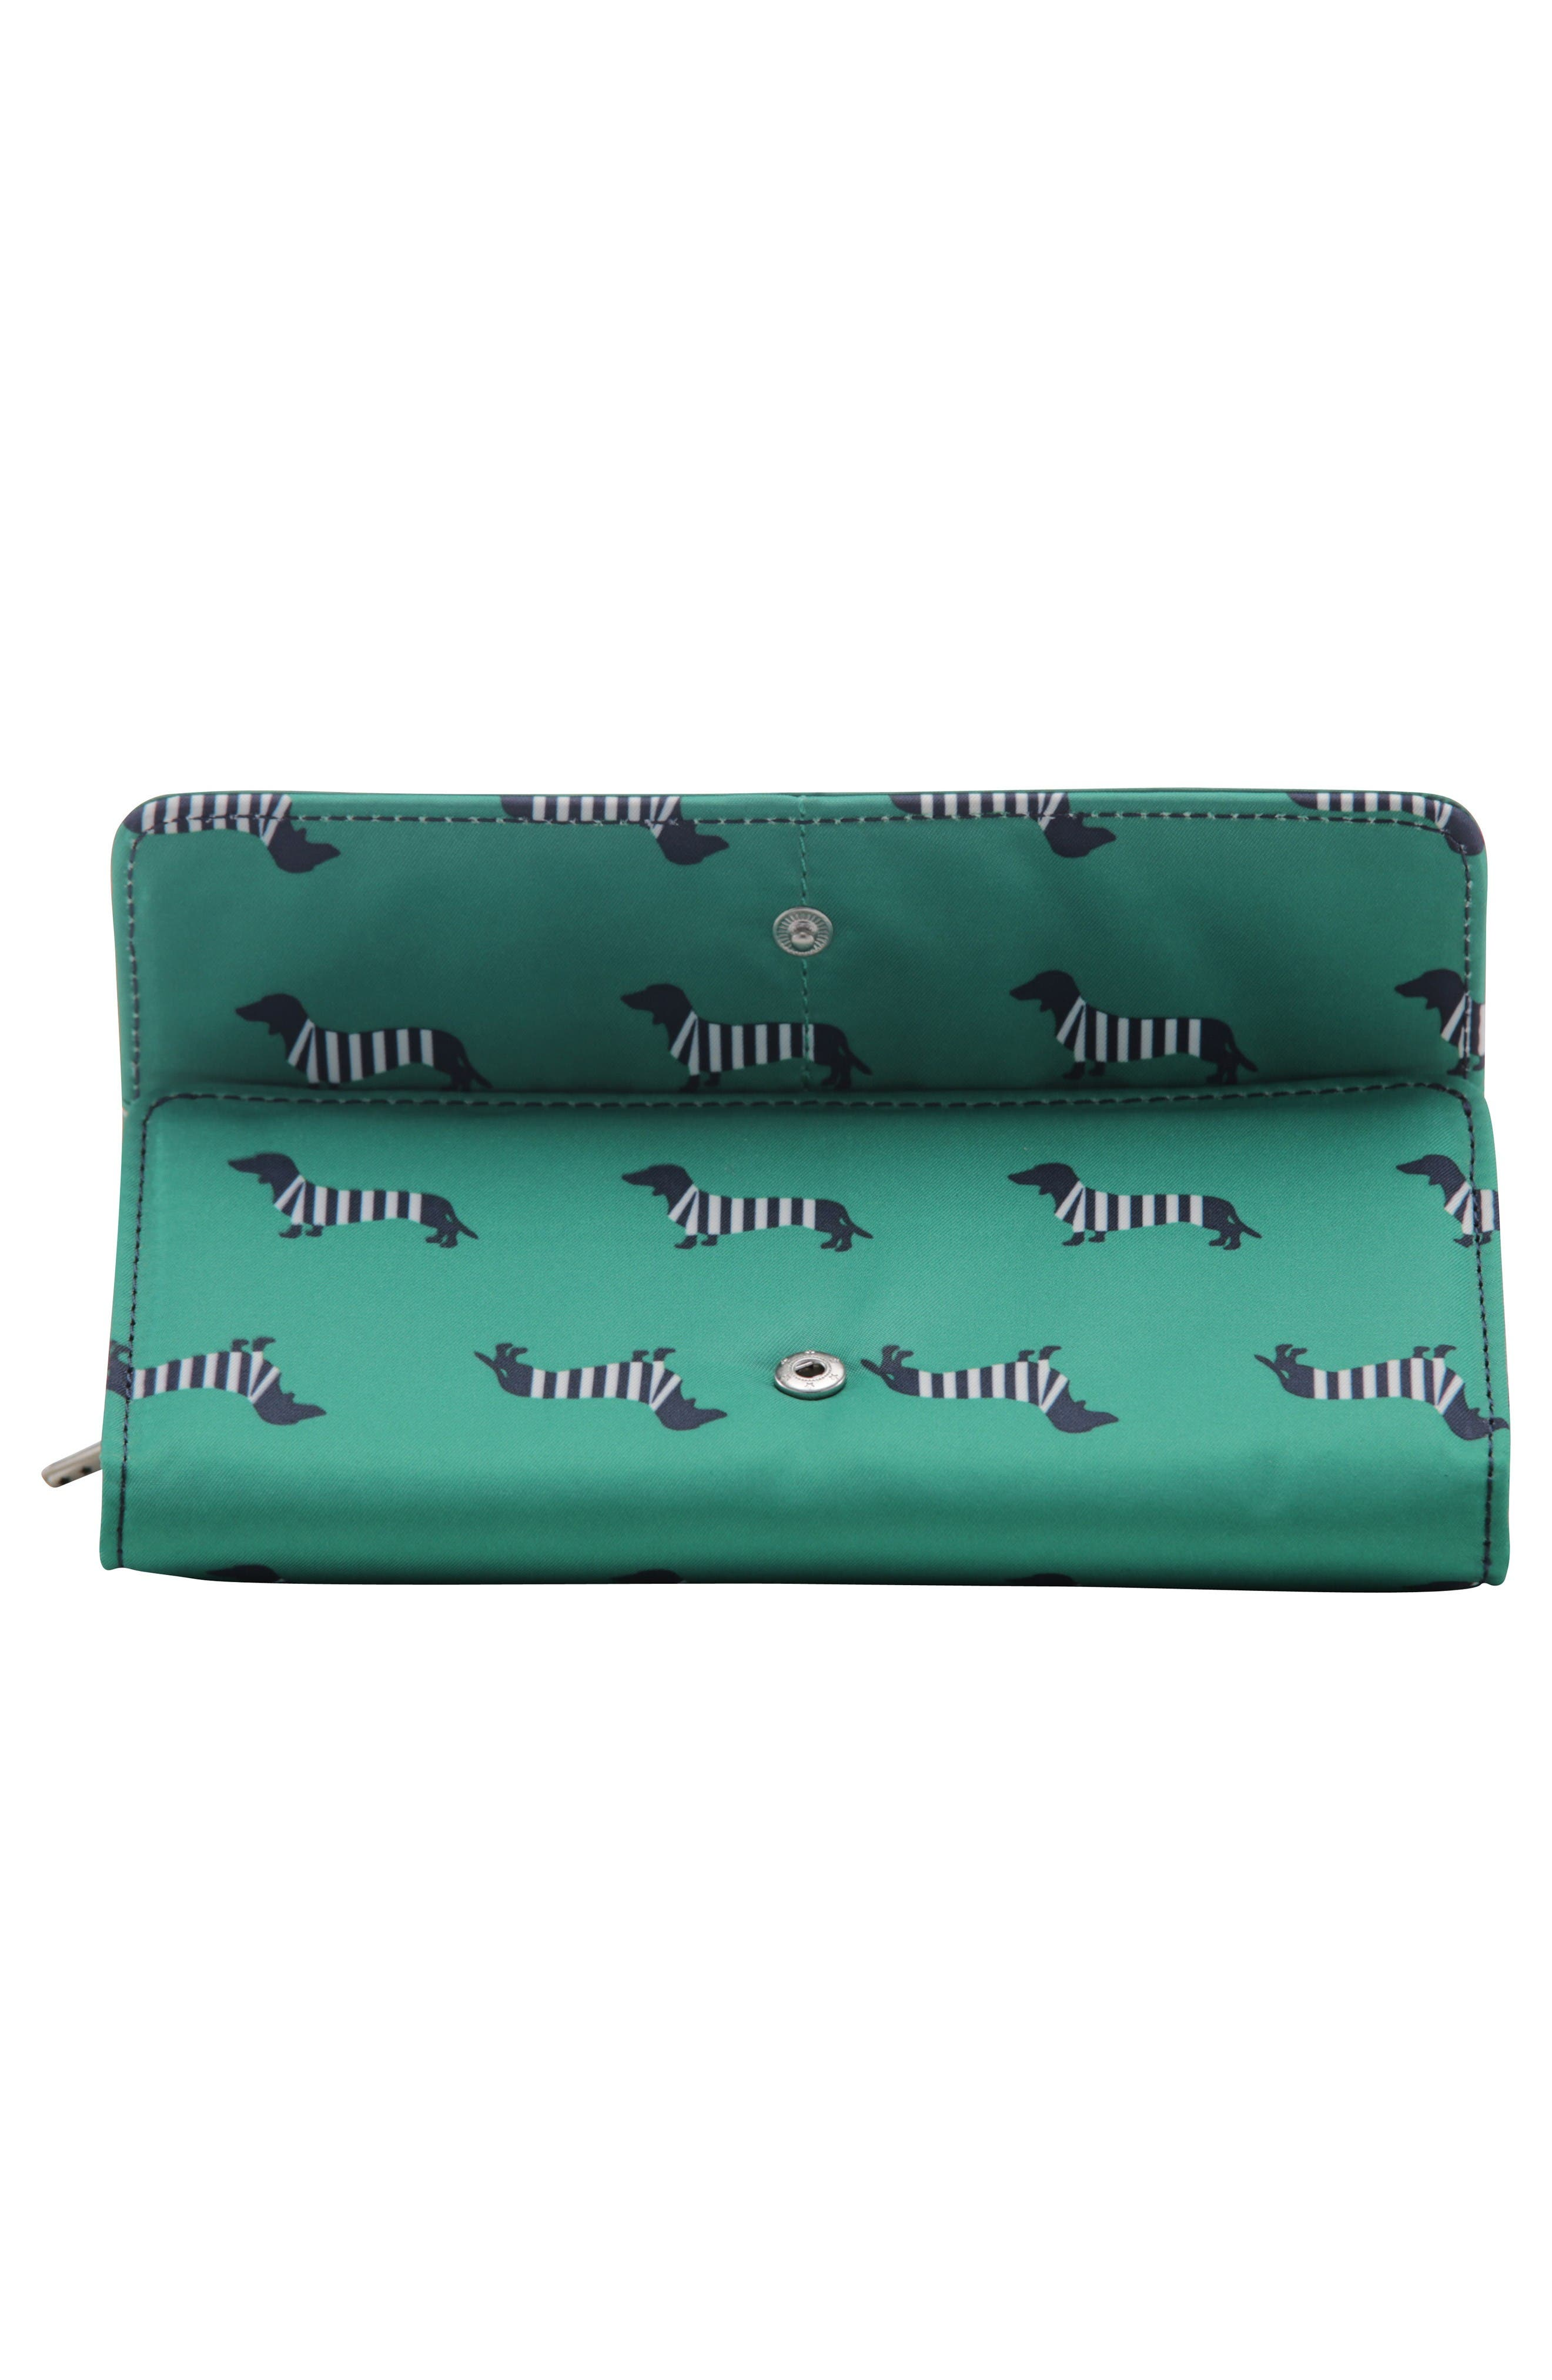 Be Rich - Coastal Collection Trifold Clutch Wallet,                             Alternate thumbnail 8, color,                             Coney Island